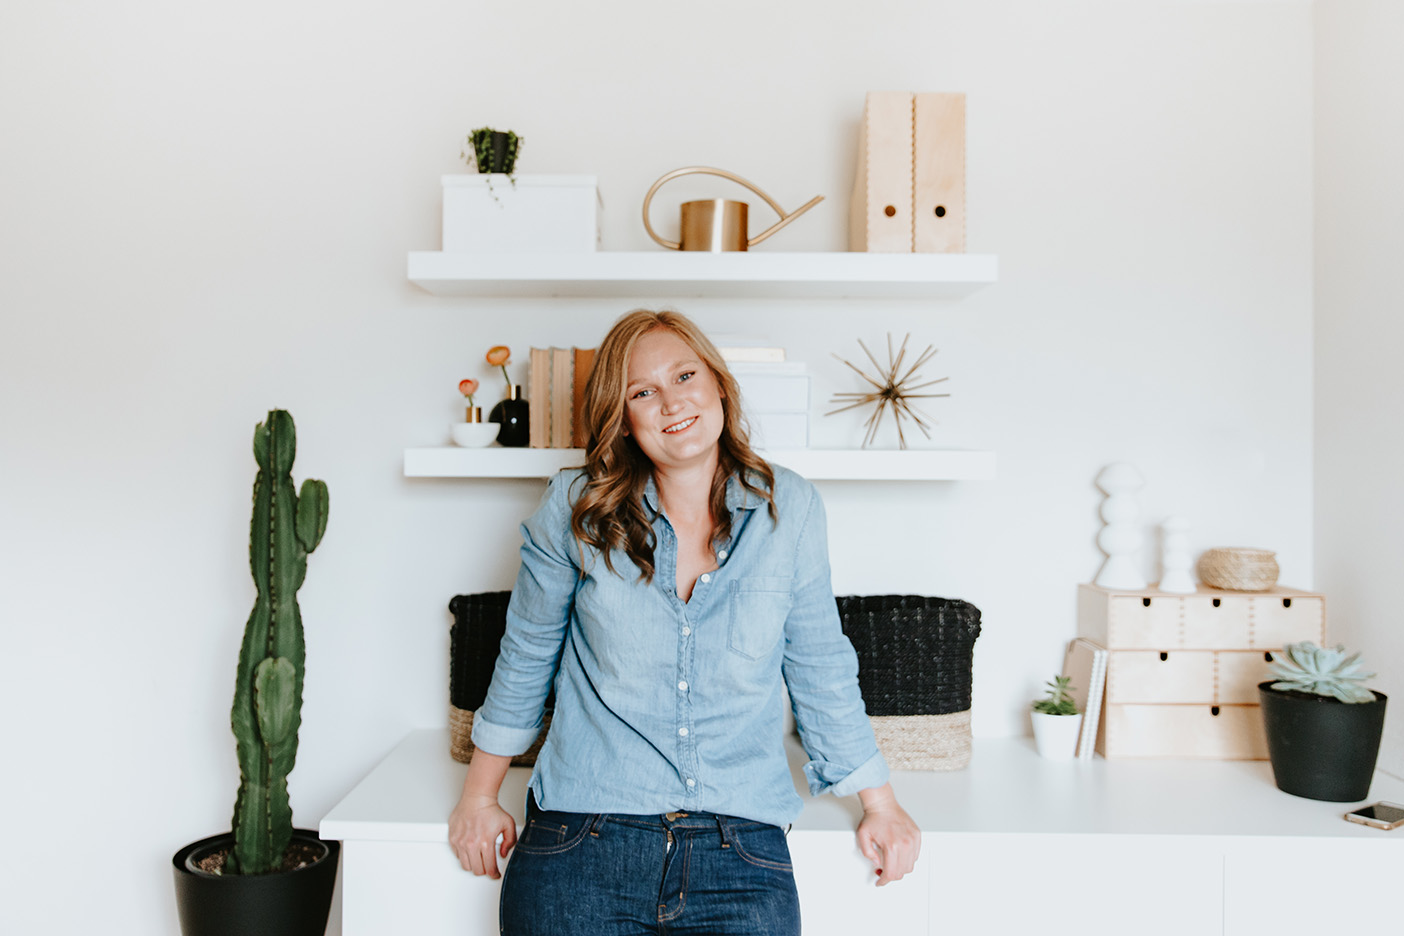 Meet the designer. - I'm Amanda, the brand and lifestyle designer behind Dennelly Design. Rooted in the power of intentional simplicity, I guide creative entrepreneurs toward the efforts that will make the biggest difference in their growing businesses.